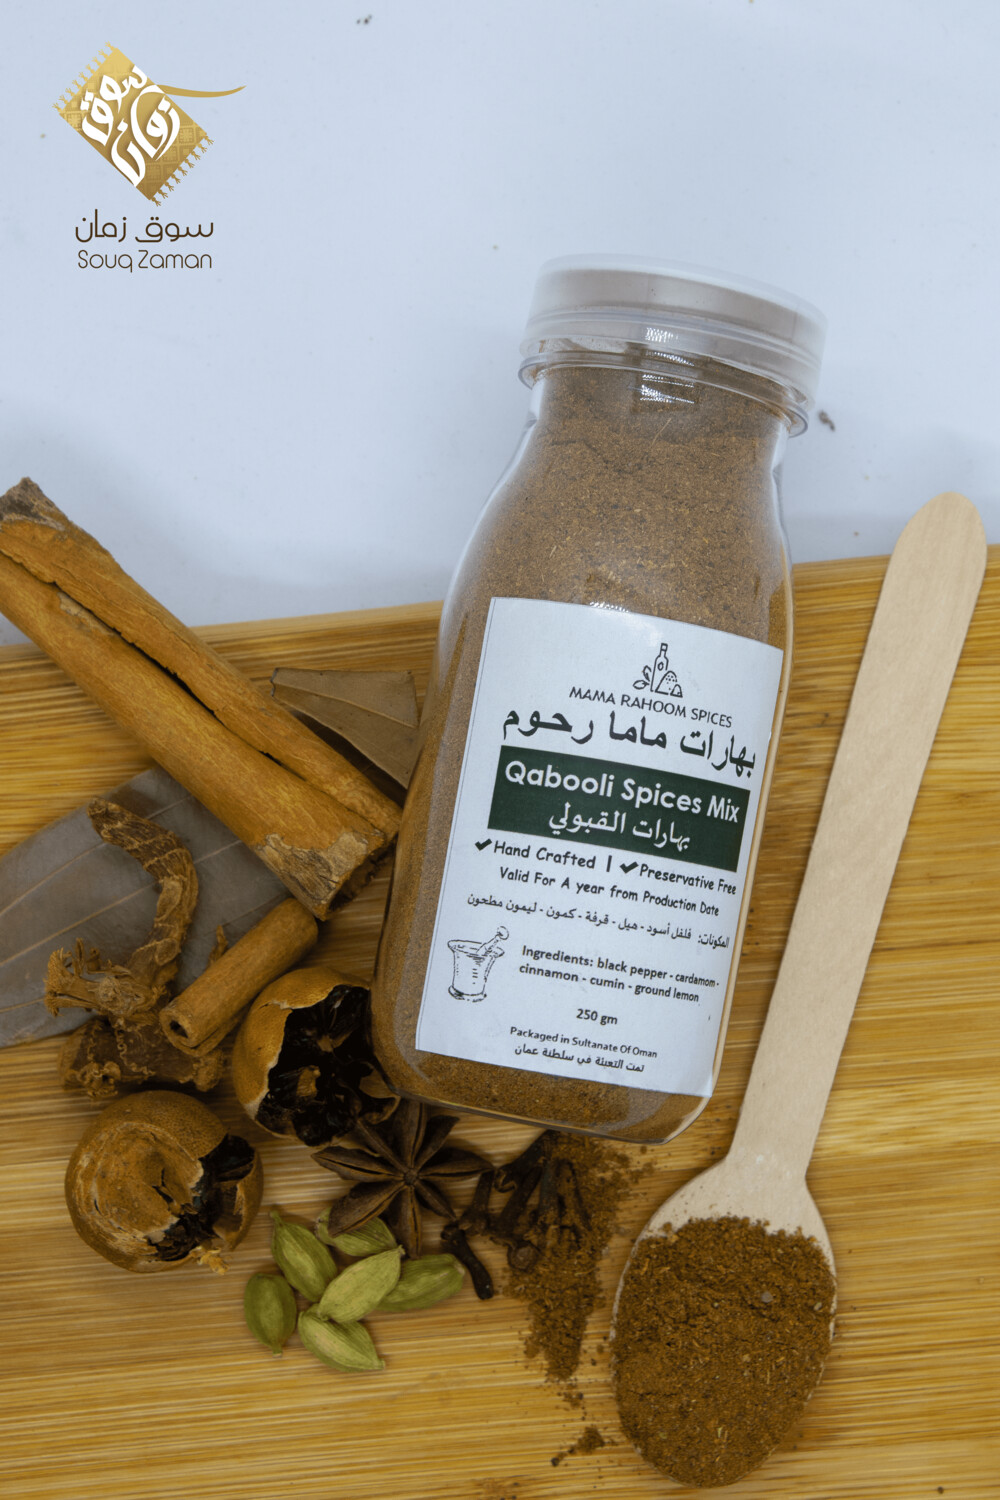 Qabooli Spices